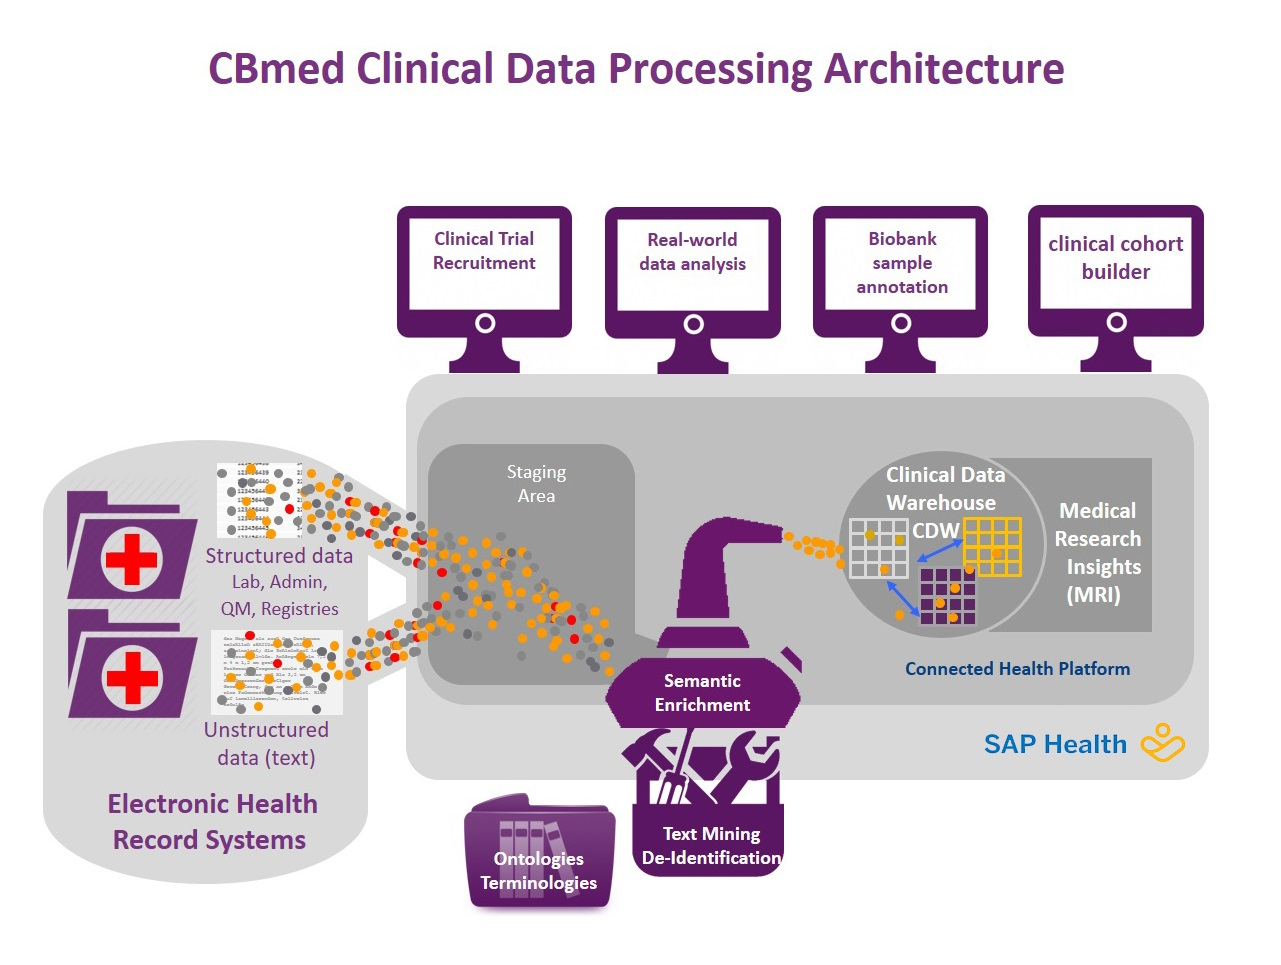 Clinical Data Processing Architecture Graphic